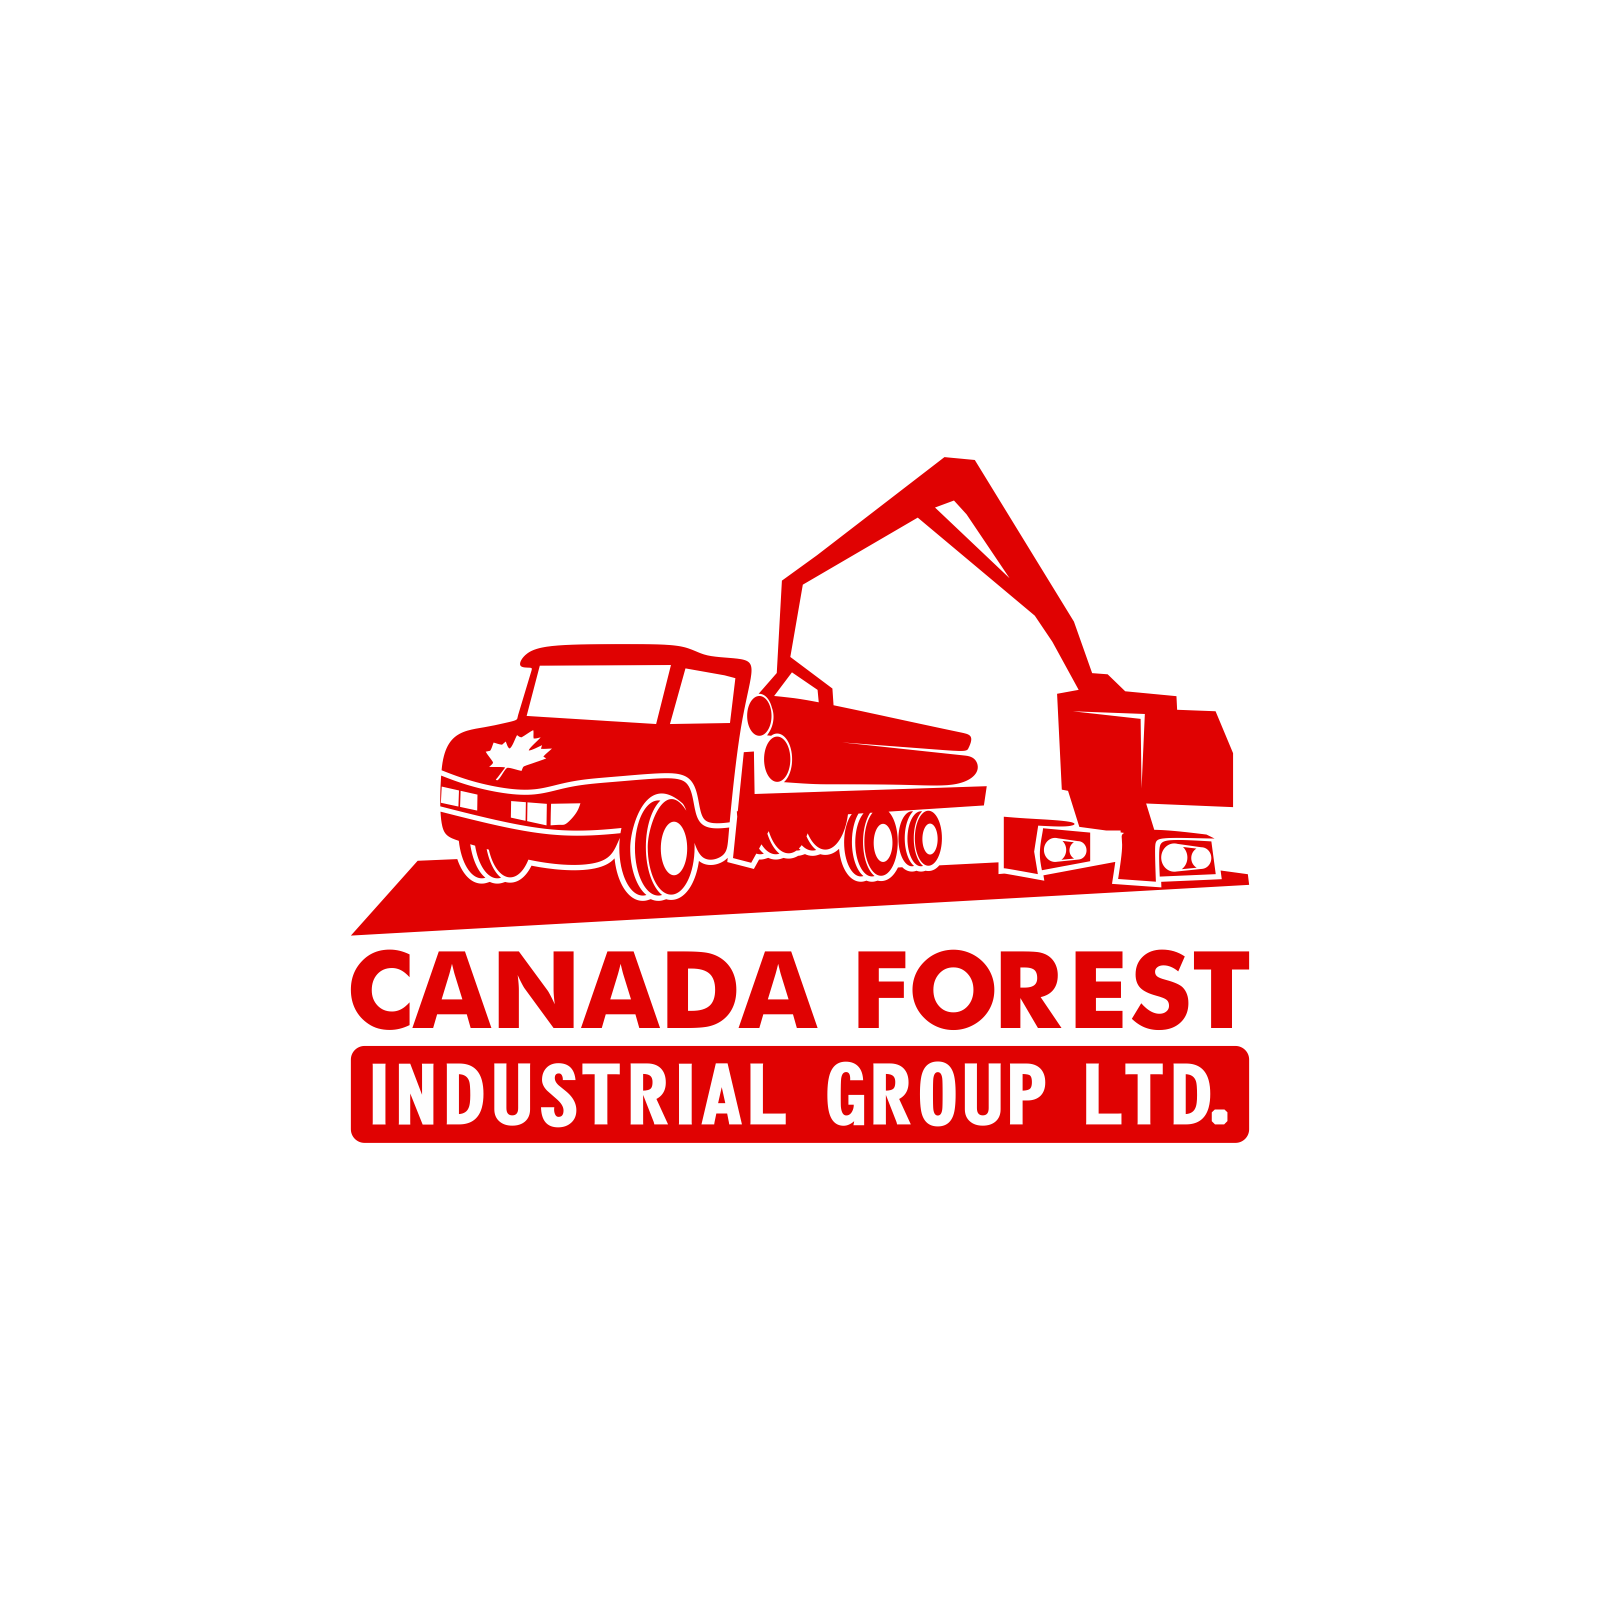 Logo Design by moisesf - Entry No. 75 in the Logo Design Contest Creative Logo Design for Canada Forest Industrial Group Ltd..